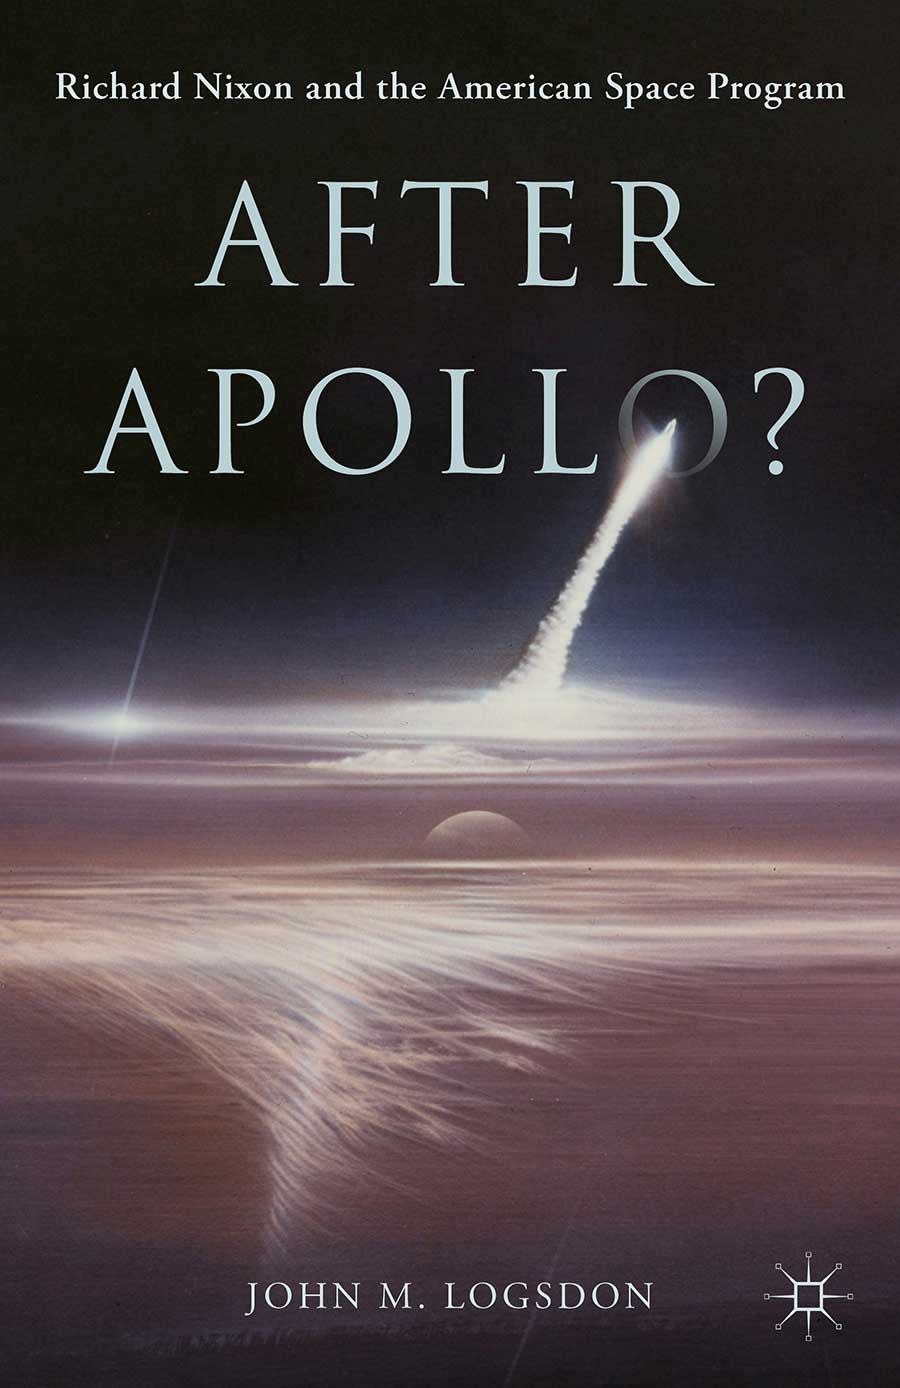 """After Apollo? Richard Nixon and the American Space Program (2015) - """"From me comes only praise, multi-faceted praise.""""– Michael Collins, Apollo 11""""Every President since has followed the Nixon space policy, yet we study it far less than Kennedy's. If you want to understand what happened then – and how it is still affecting us 40 years later – read this book. Study it. Learn from the past to change the future.""""– Wayne Hale, space shuttle program manager and shuttle flight director""""Expertly researched, wonderfully written, very readable…Essential reading for everyone concerned with the course of space exploration.""""– Professor Howard McCurdy, American University."""